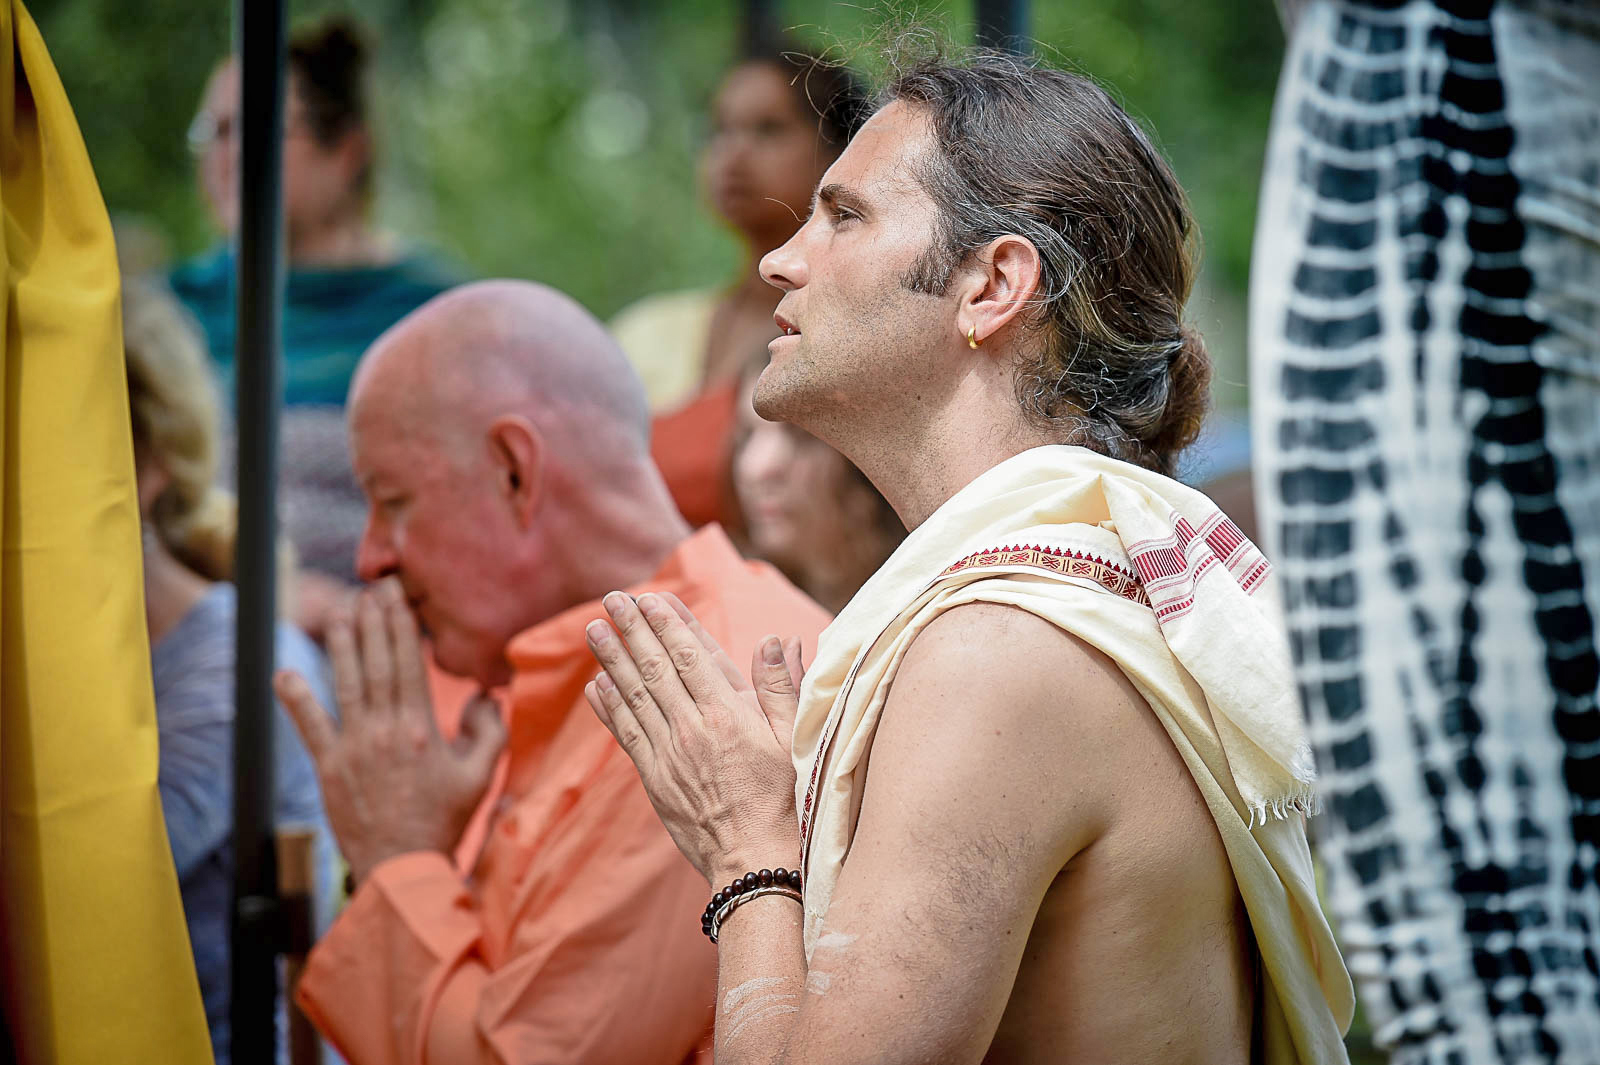 Naren Schreiner (foreground) and Swami Sankarananda (background) offer devotional prayers of gratitude and praise during YogaFest 2017. We are blessed to have these two sincere souls infuse the festival atmosphere with their deeply peaceful and supremely loving spirits, and are pleased to announce plans for both Naren and Swami to return for YogaFest 2018.